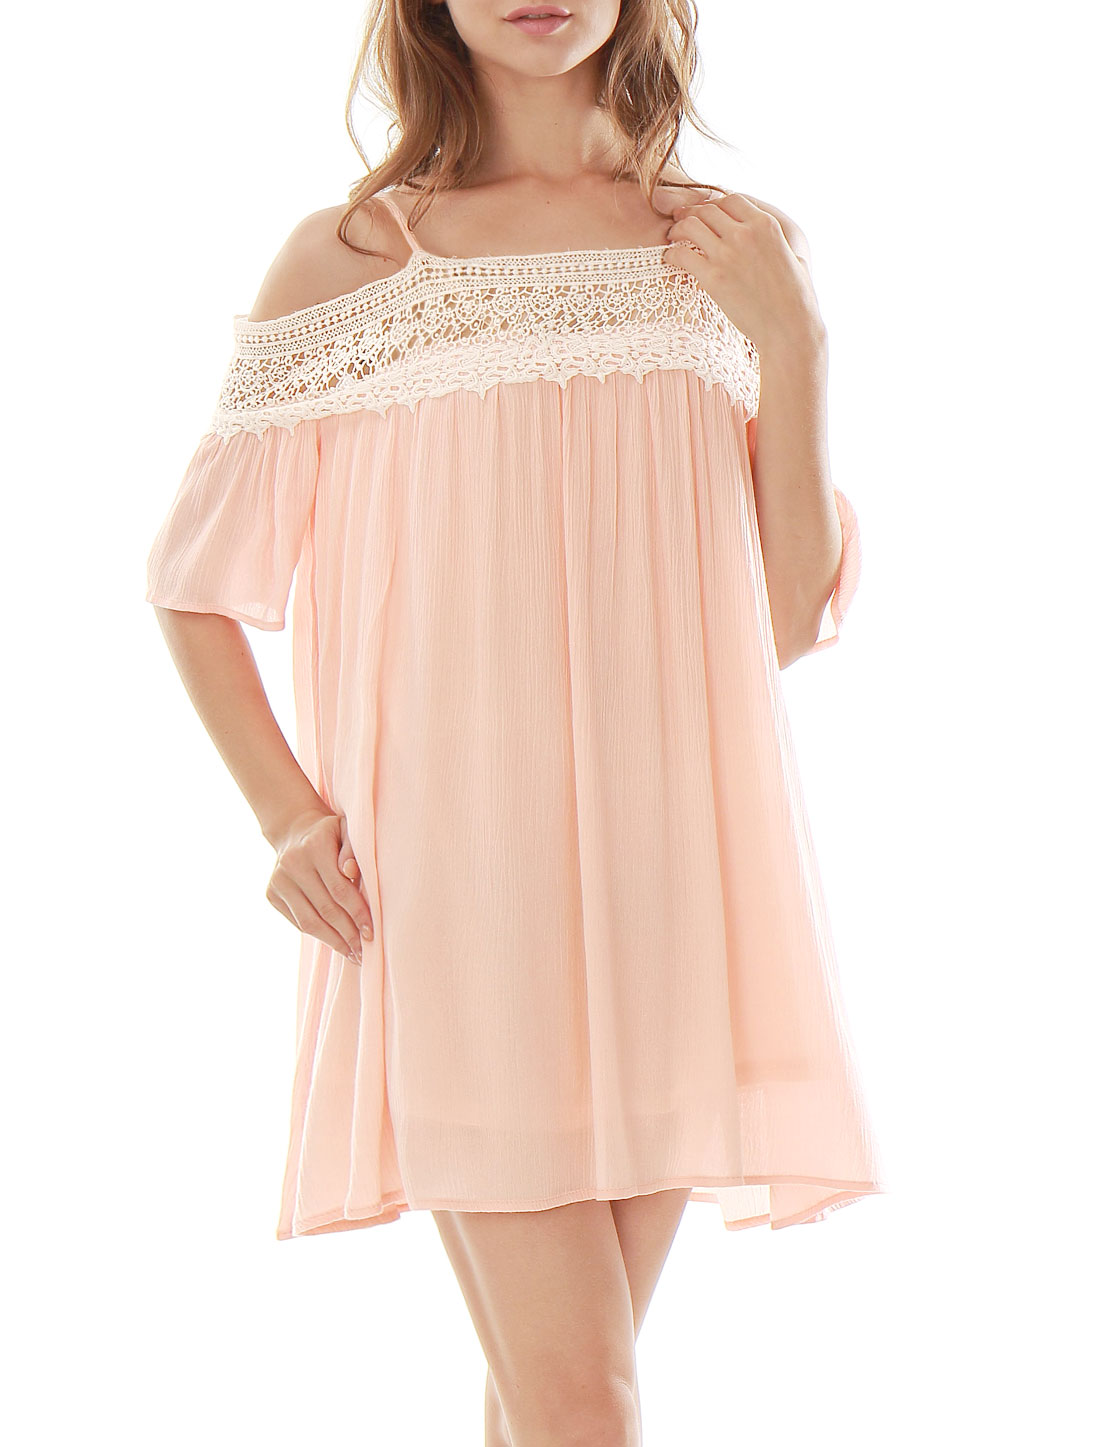 Women Crochet Panel Spaghetti Strap Cold Shoulder Dress Pink L